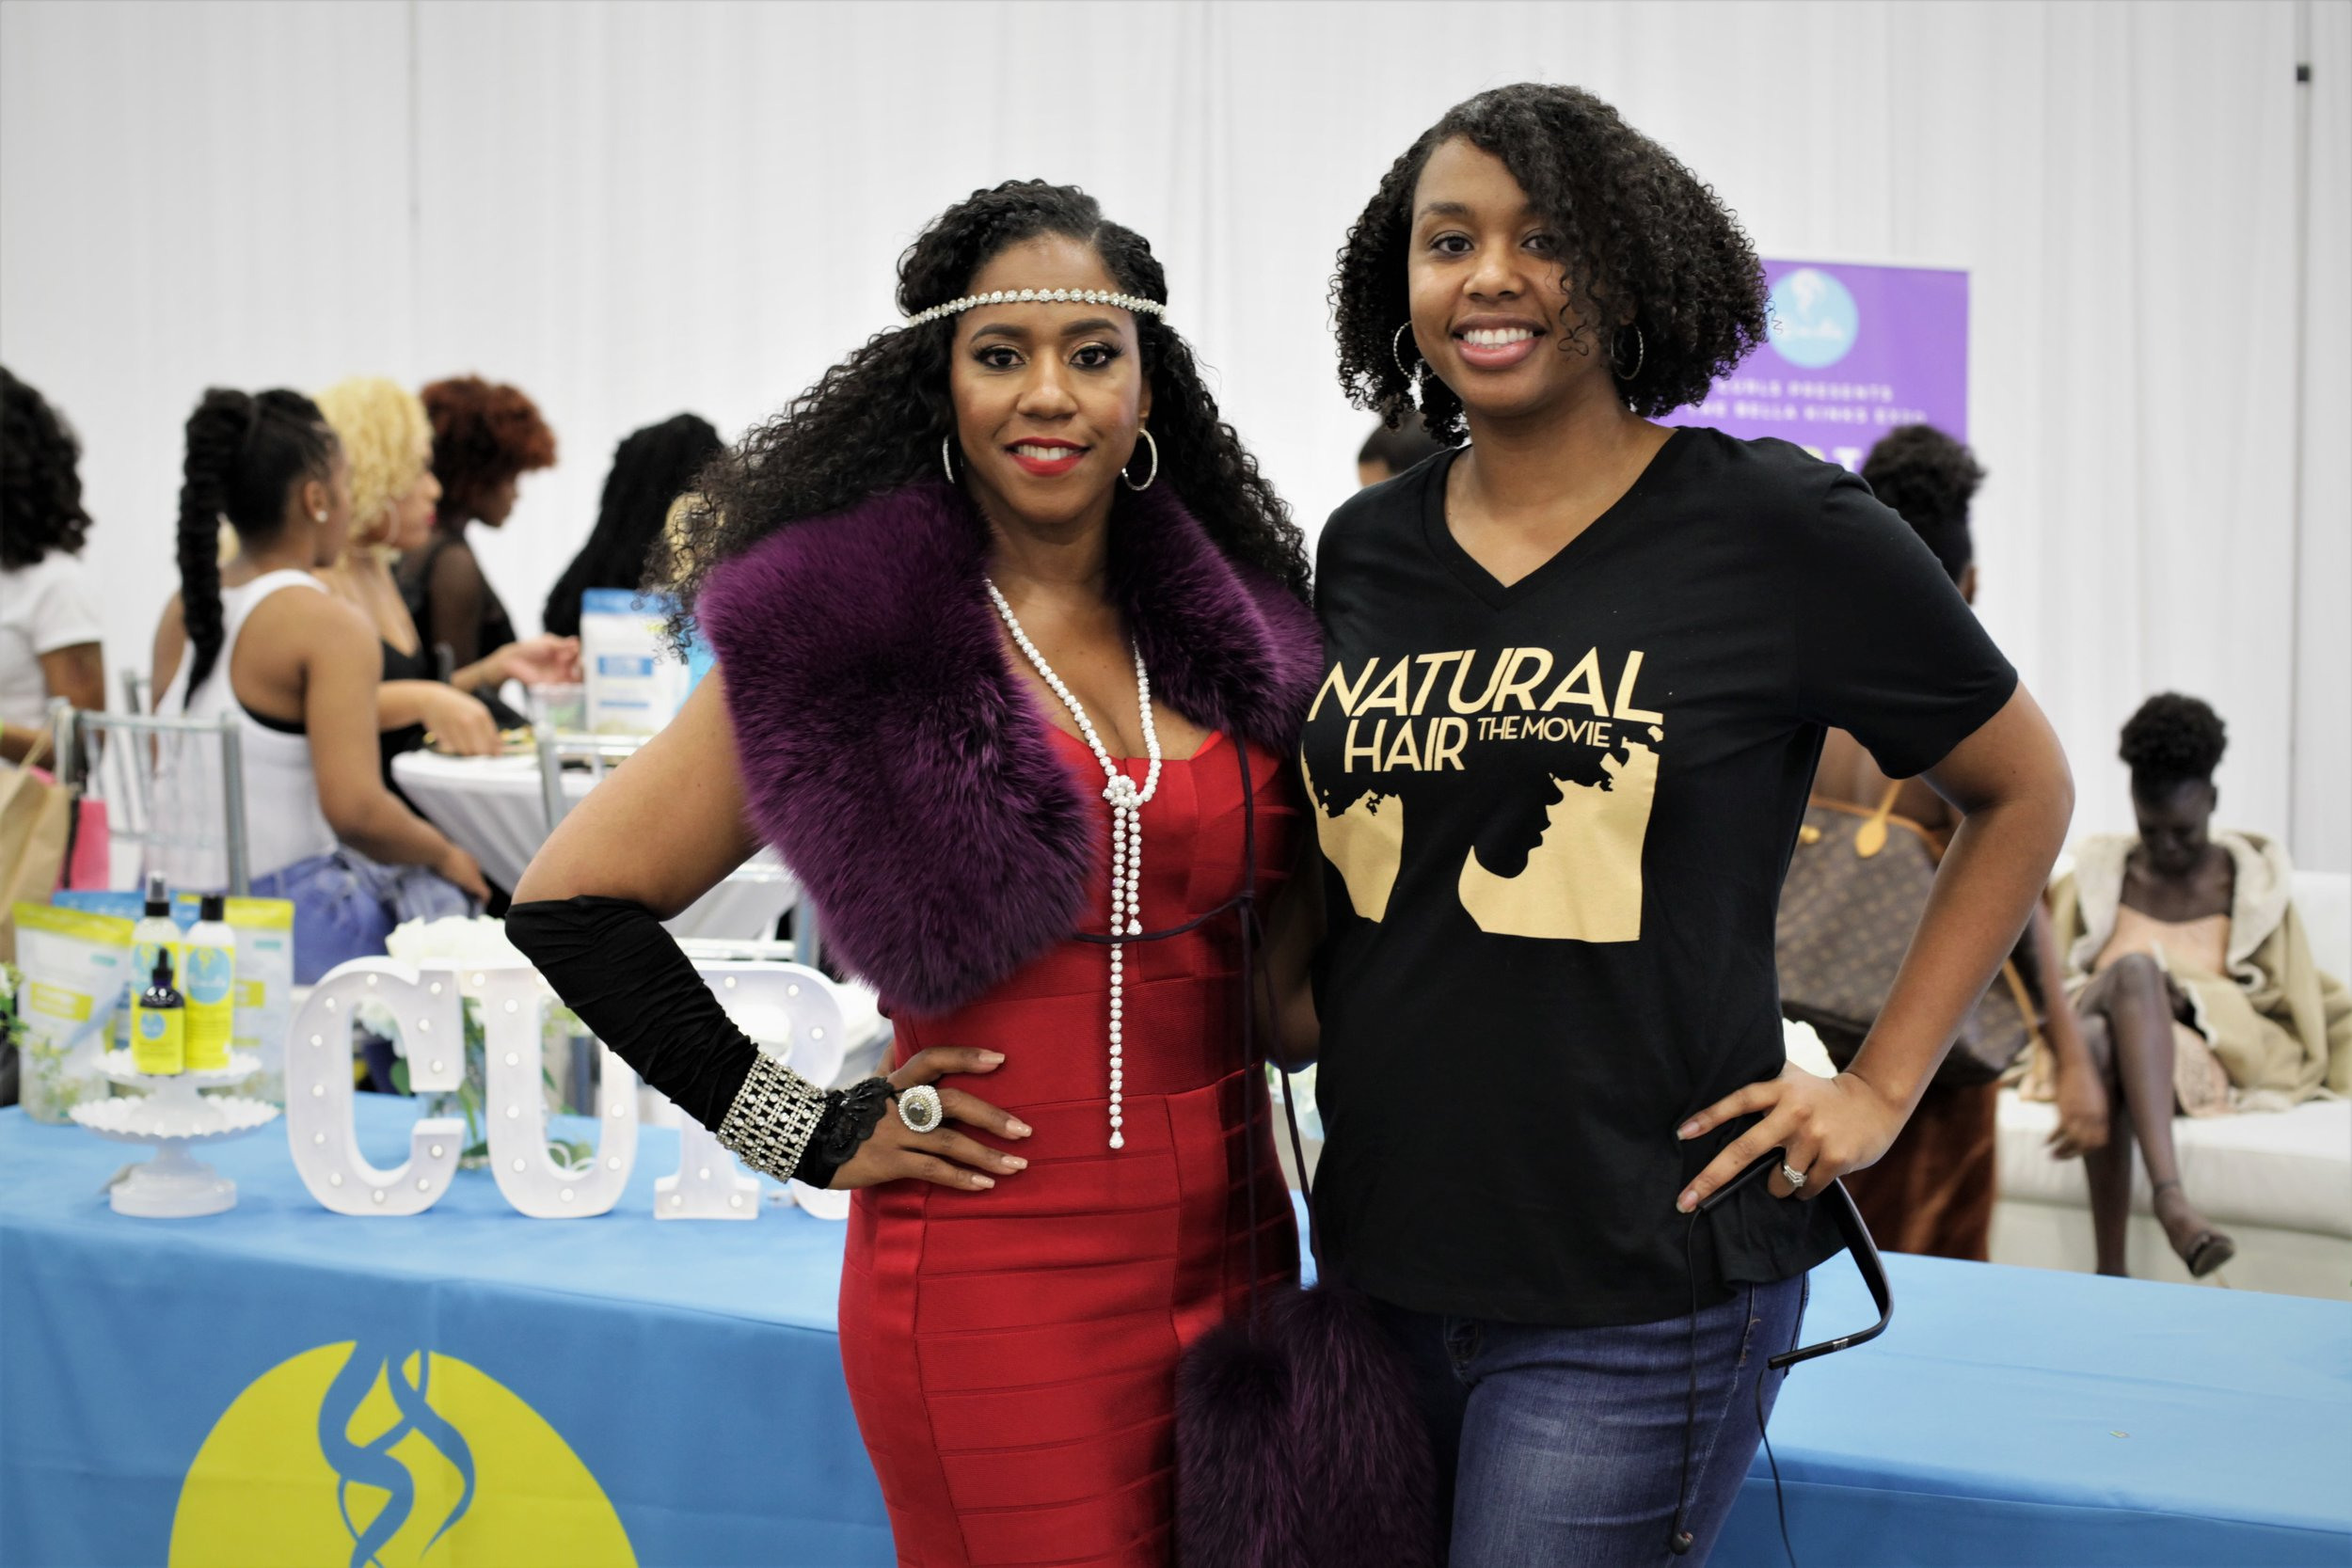 CEO of Curls.biz Mahisha Dellinger and Executive Producer Ashanti Titus